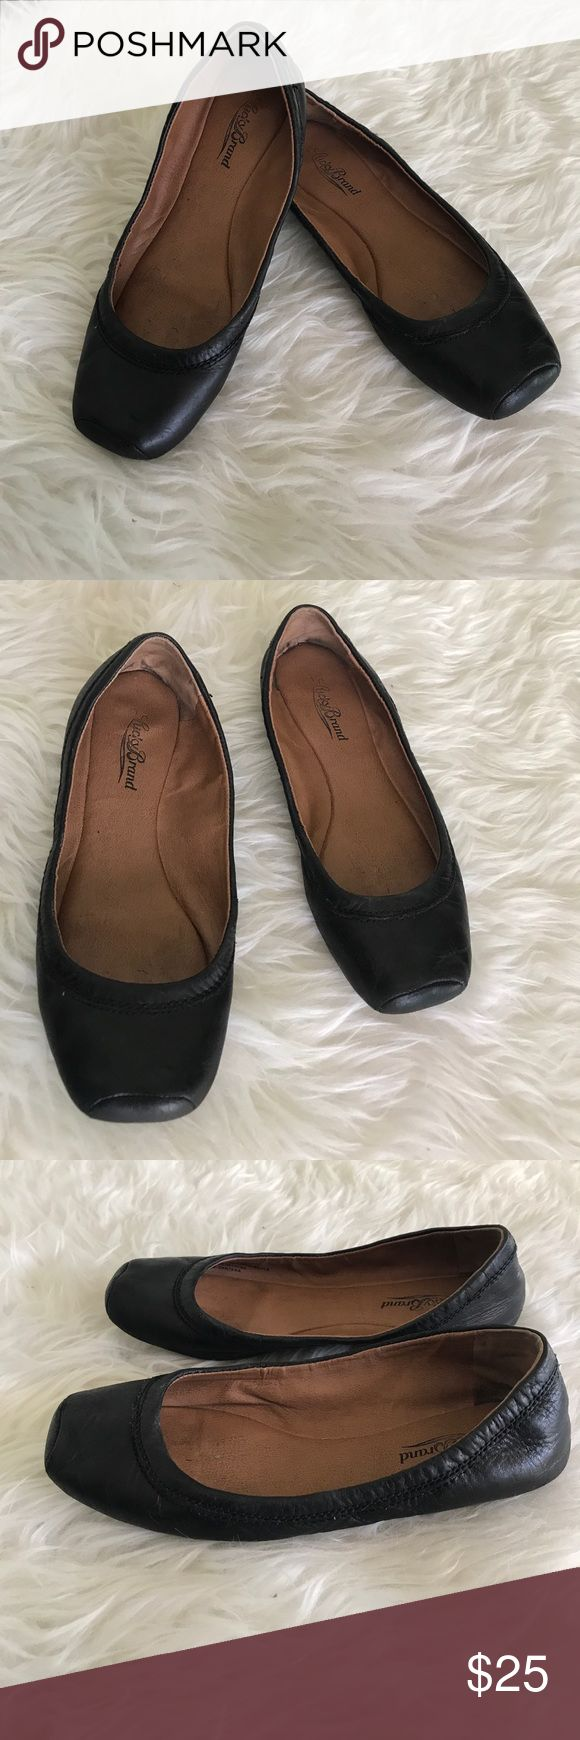 Lucky Brand ballet flats Classic ballet flats by Lucky Brand. Black leather body with square toes. Shows some wear but lots of life left. Dress up or down! Lucky Brand Shoes Flats & Loafers